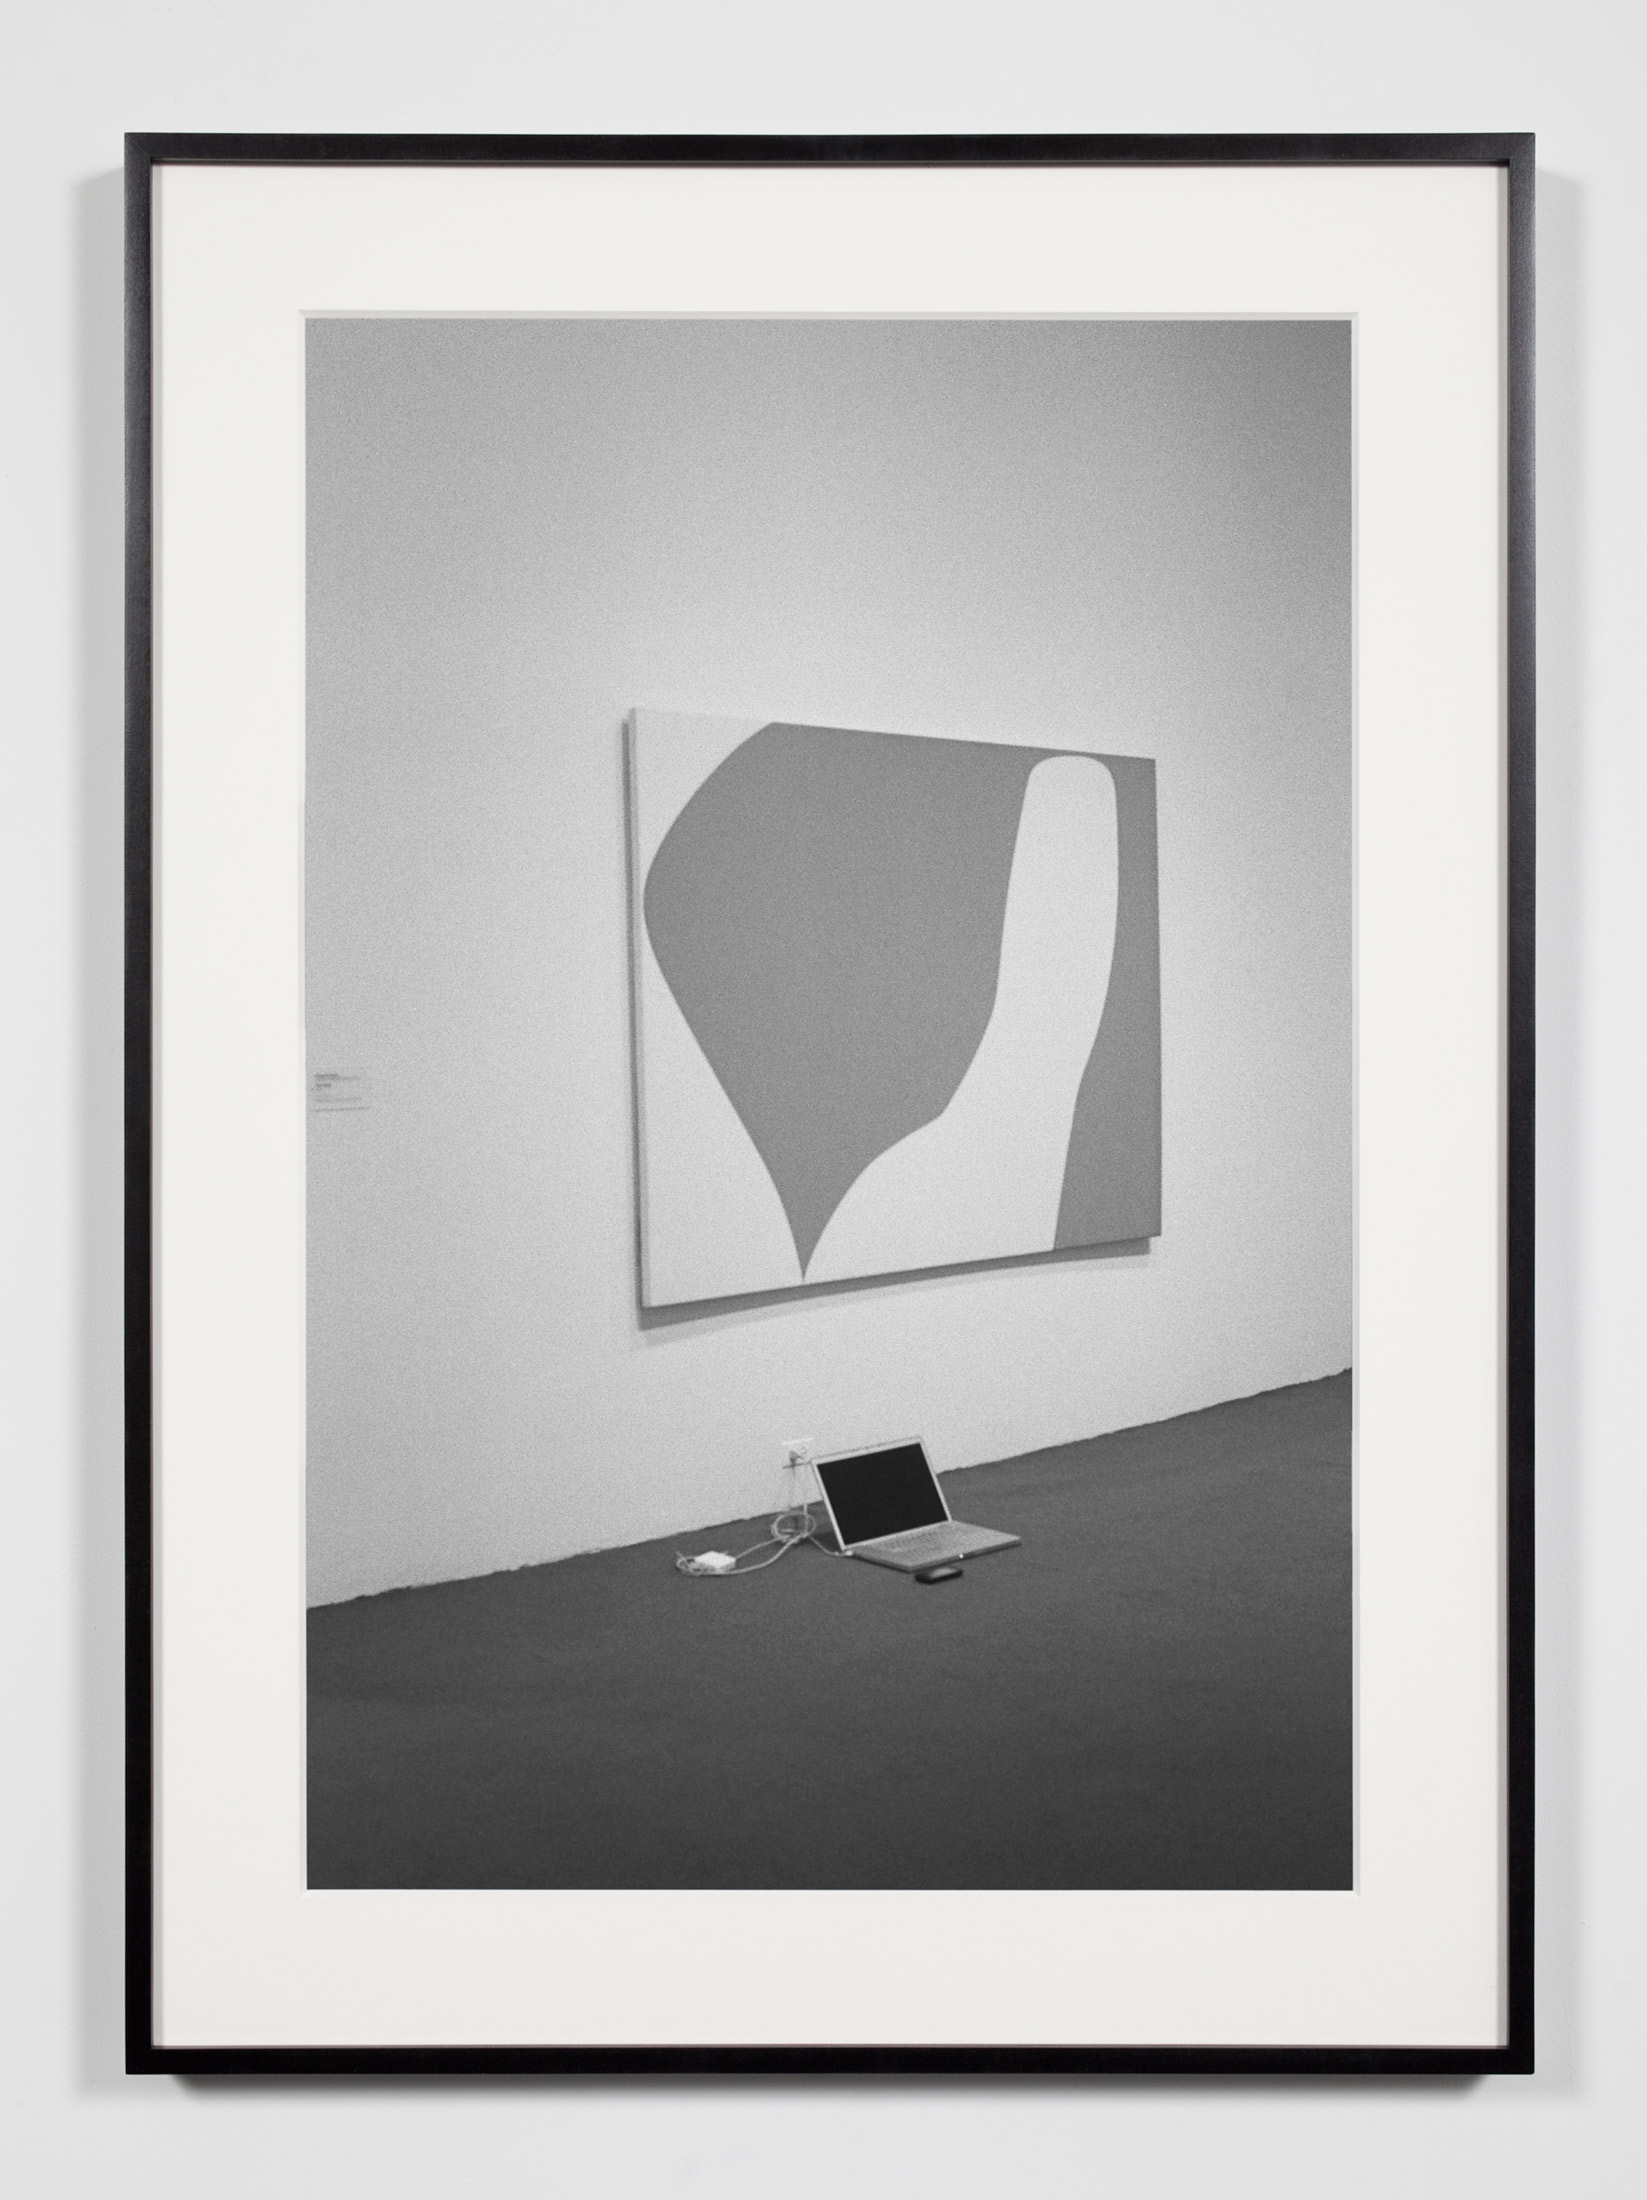 Installation View (MacBook Pro, iPhone and Ellsworth Kelly, 'Red White', 1961), Washington,District of Columbia, April 27,2009    2009   Epson Ultrachrome K3 archival ink jet print on Hahnemühle Photo Rag paper  36 3/8 x 26 3/8 inches   Industrial Portraits, 2008–